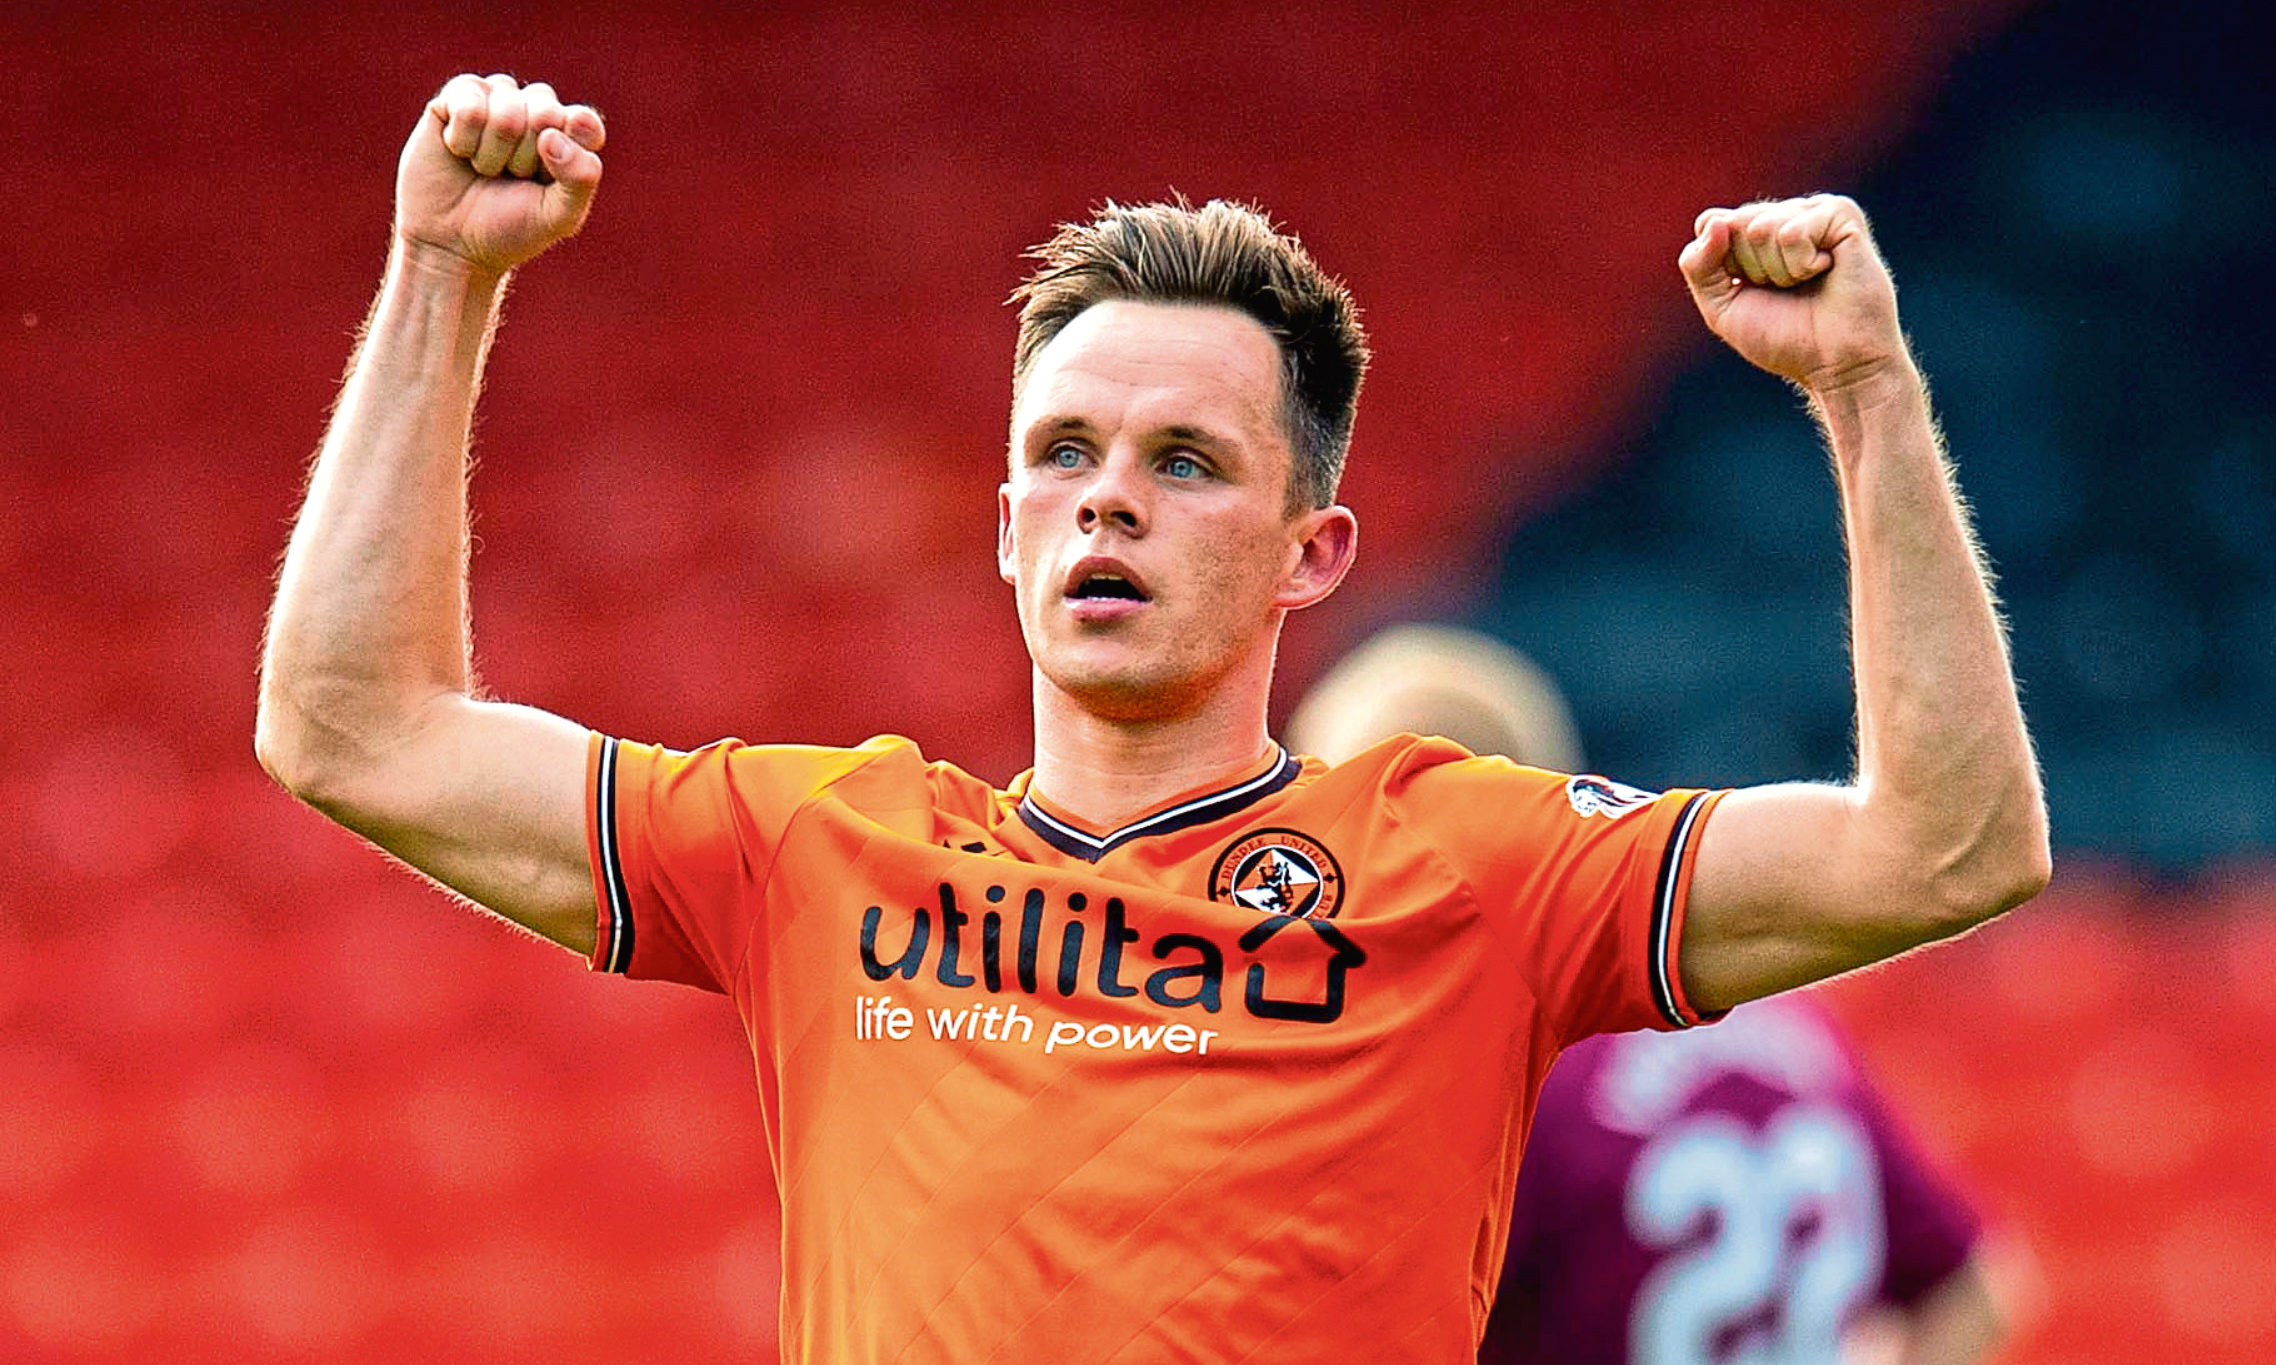 Undboubtedly United's star player this season, Saturday's win proved the Tangerines can win - and score goals - without Lawrence Shankland.